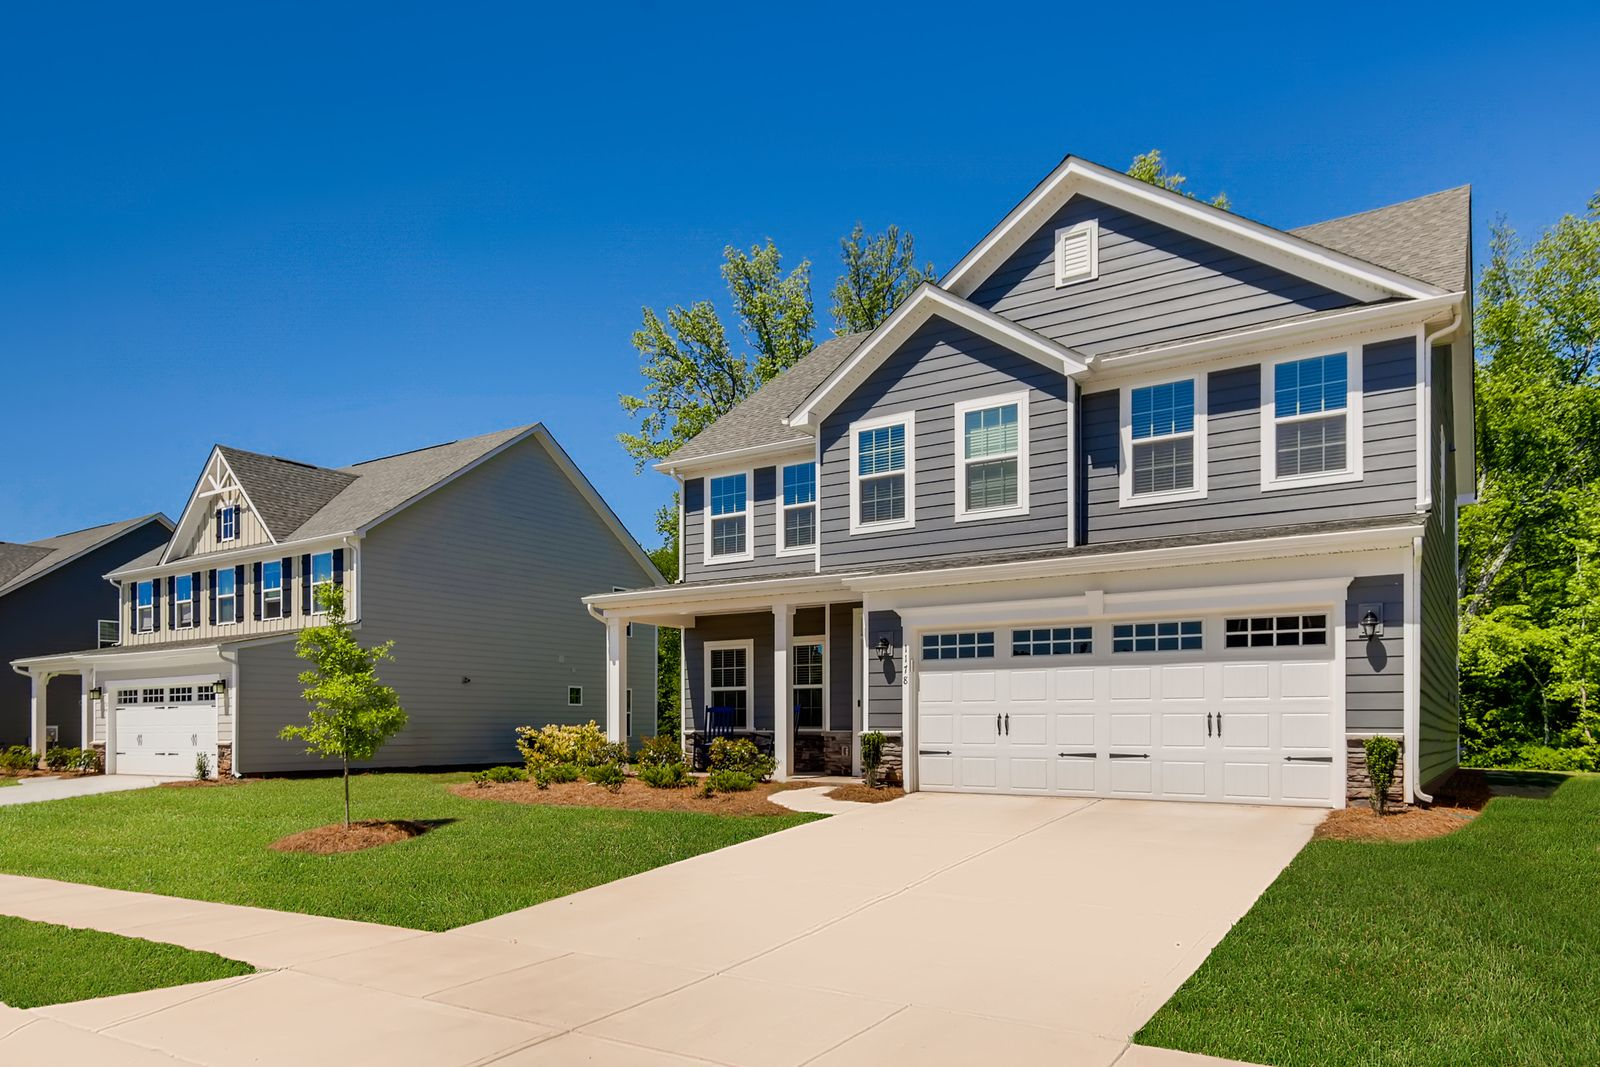 LIMITED HOMESITES ARE BEING RELEASED EVERY MONTH.:Join the VIP Listand be notified when new homesites are released in this sought-after community!